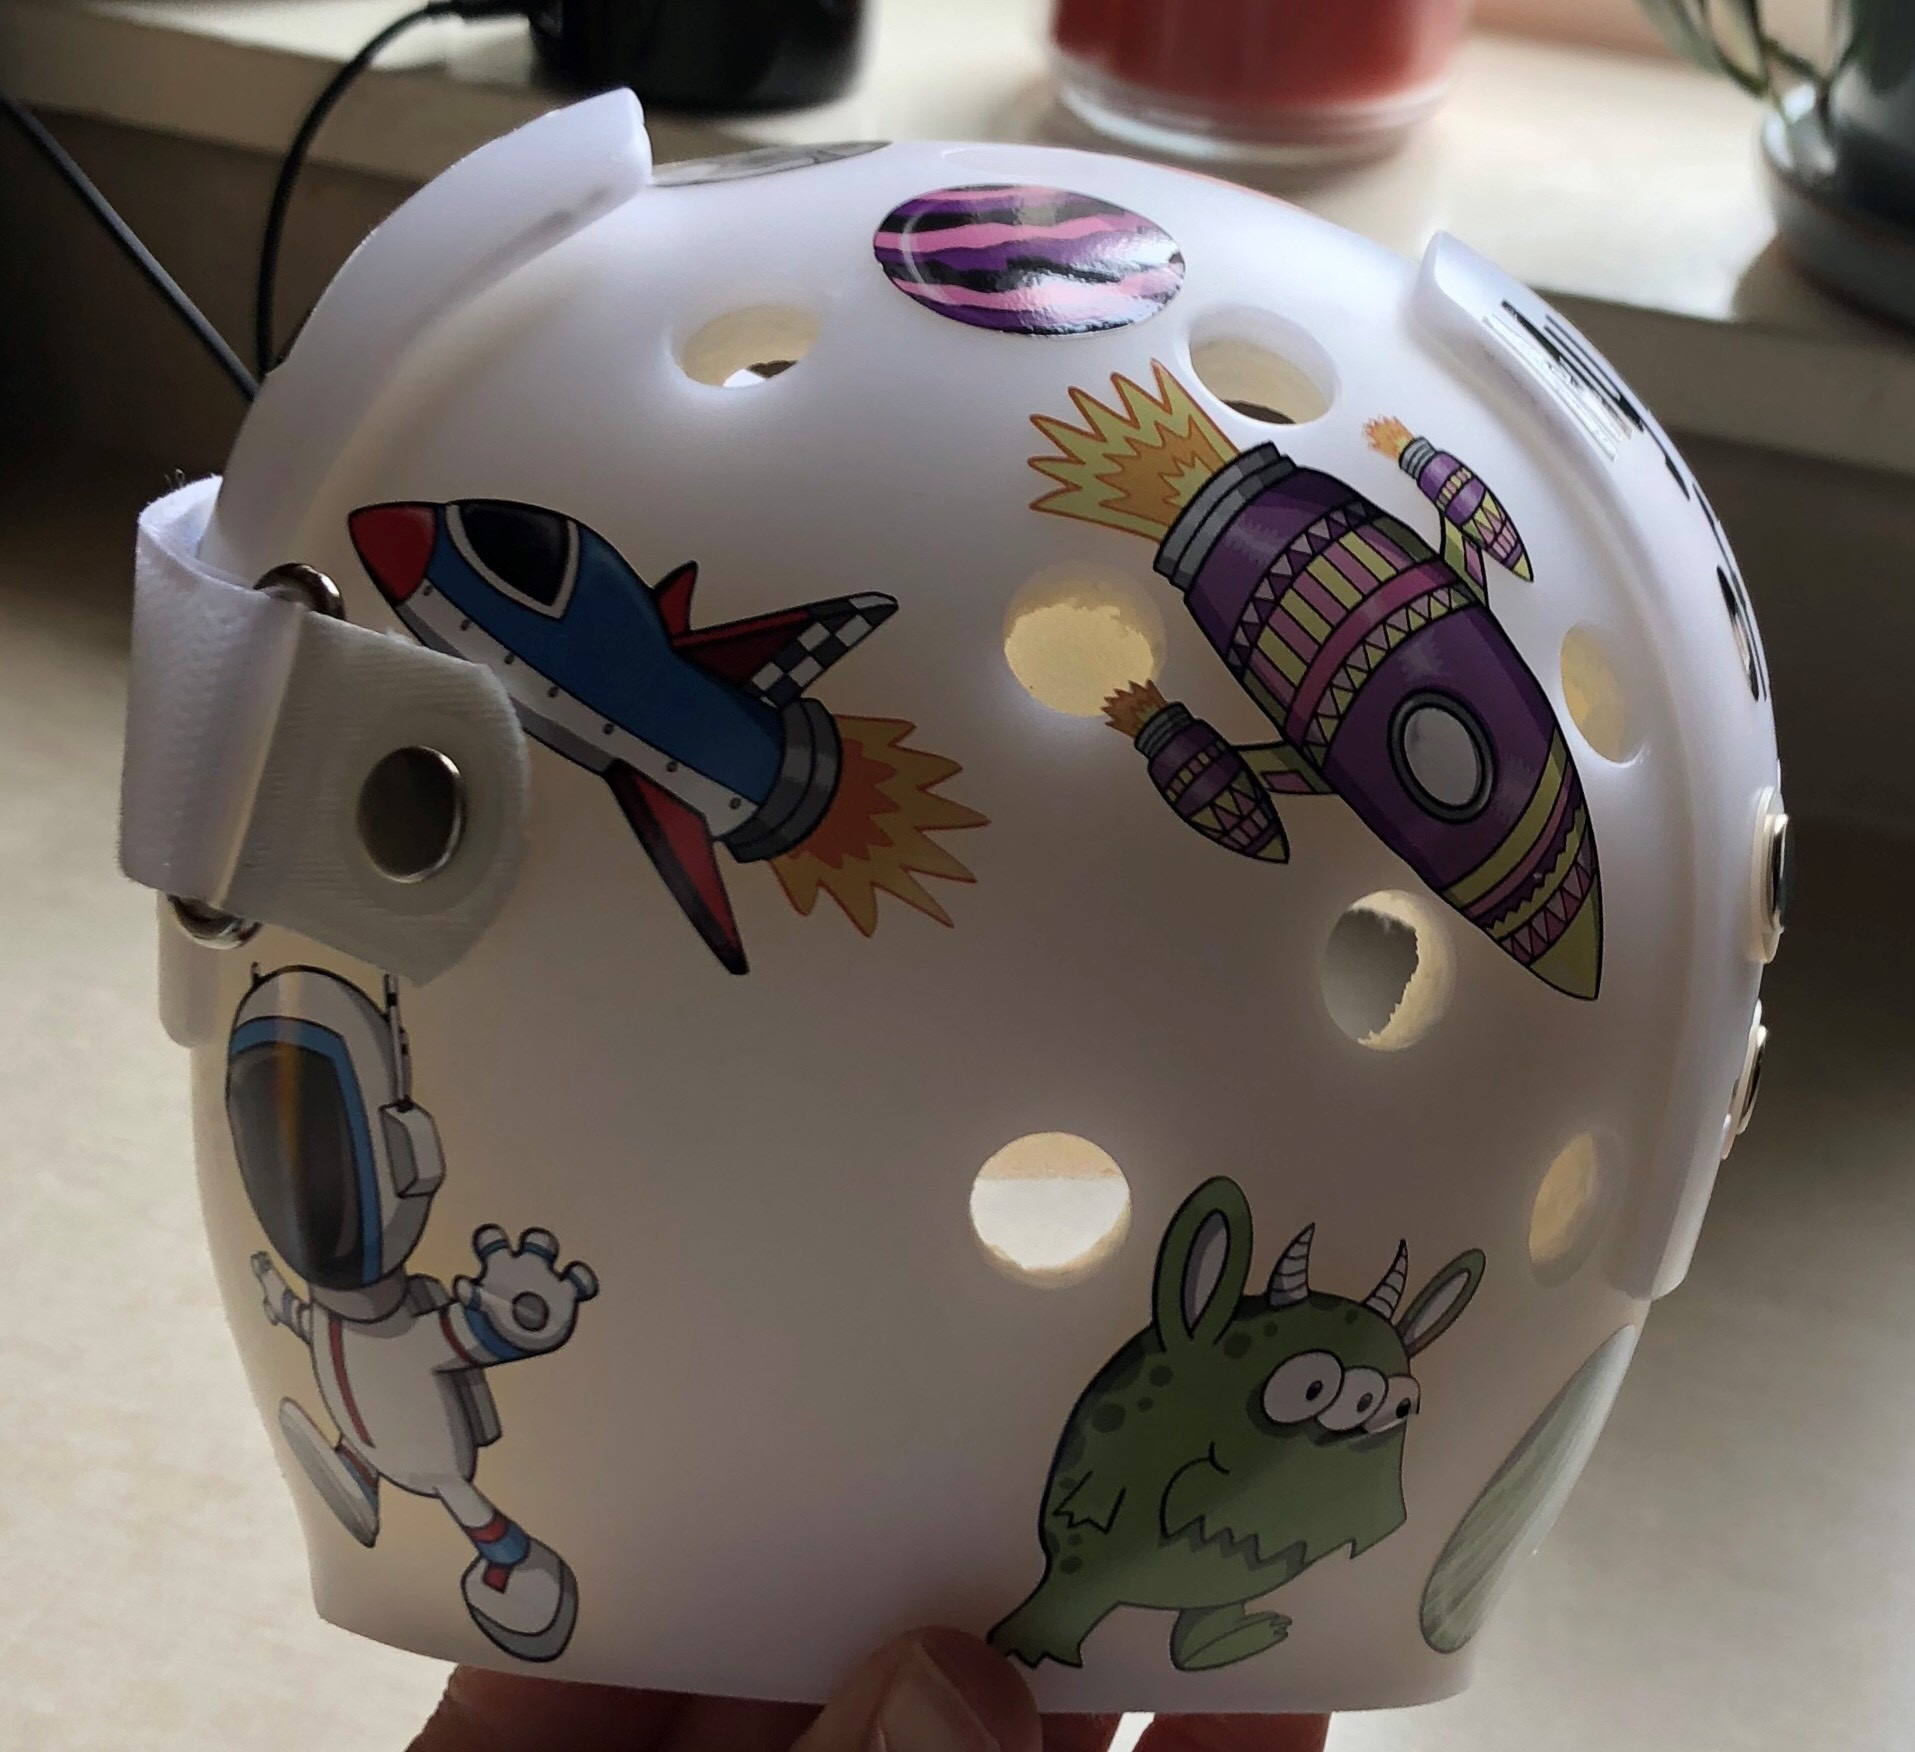 Spaceships cranial band